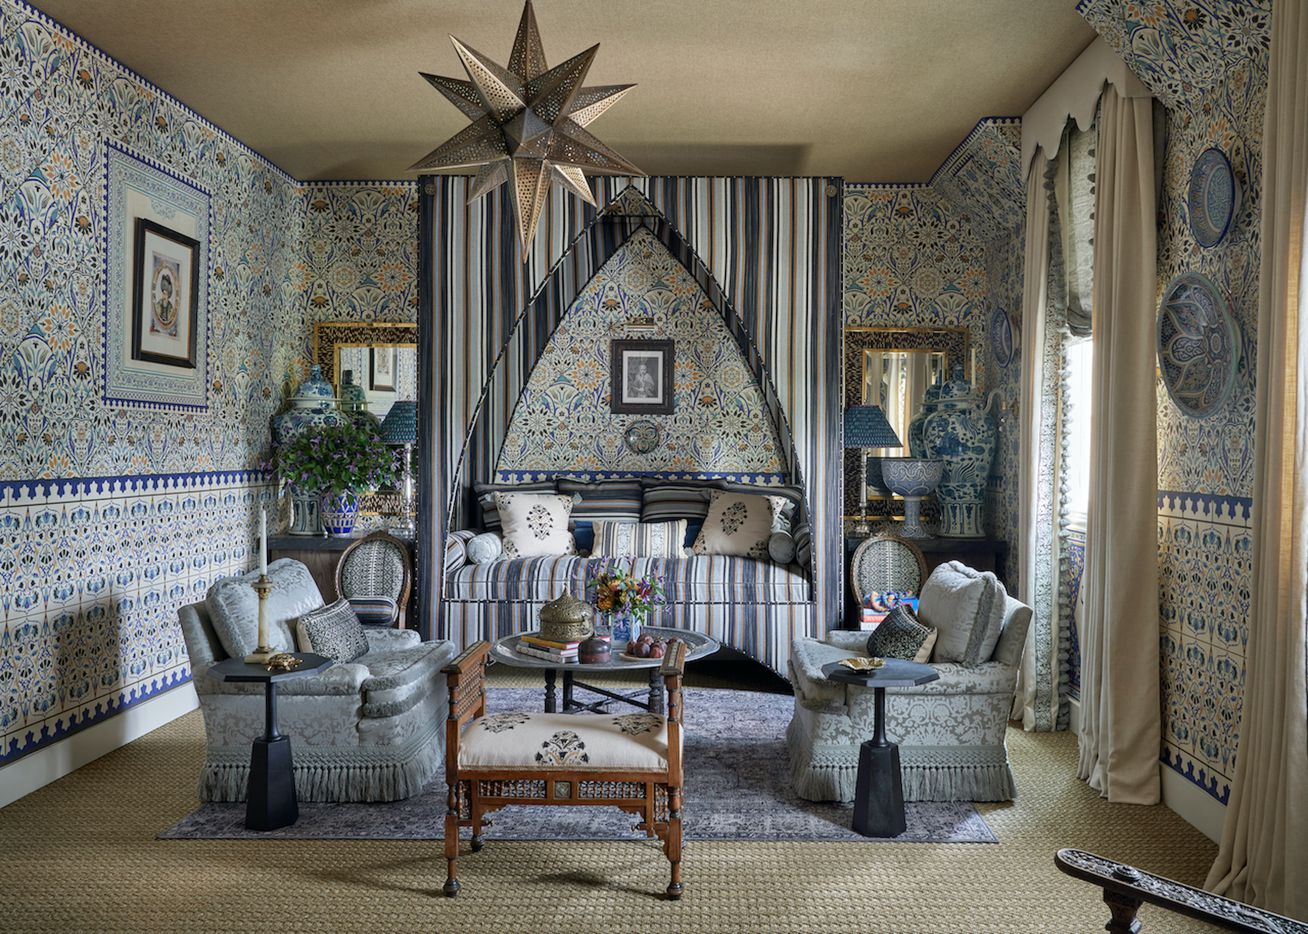 A bedroom at the Kips Bay Decorator Show House Dallas. This room was designed by Michelle Nussbaumer.